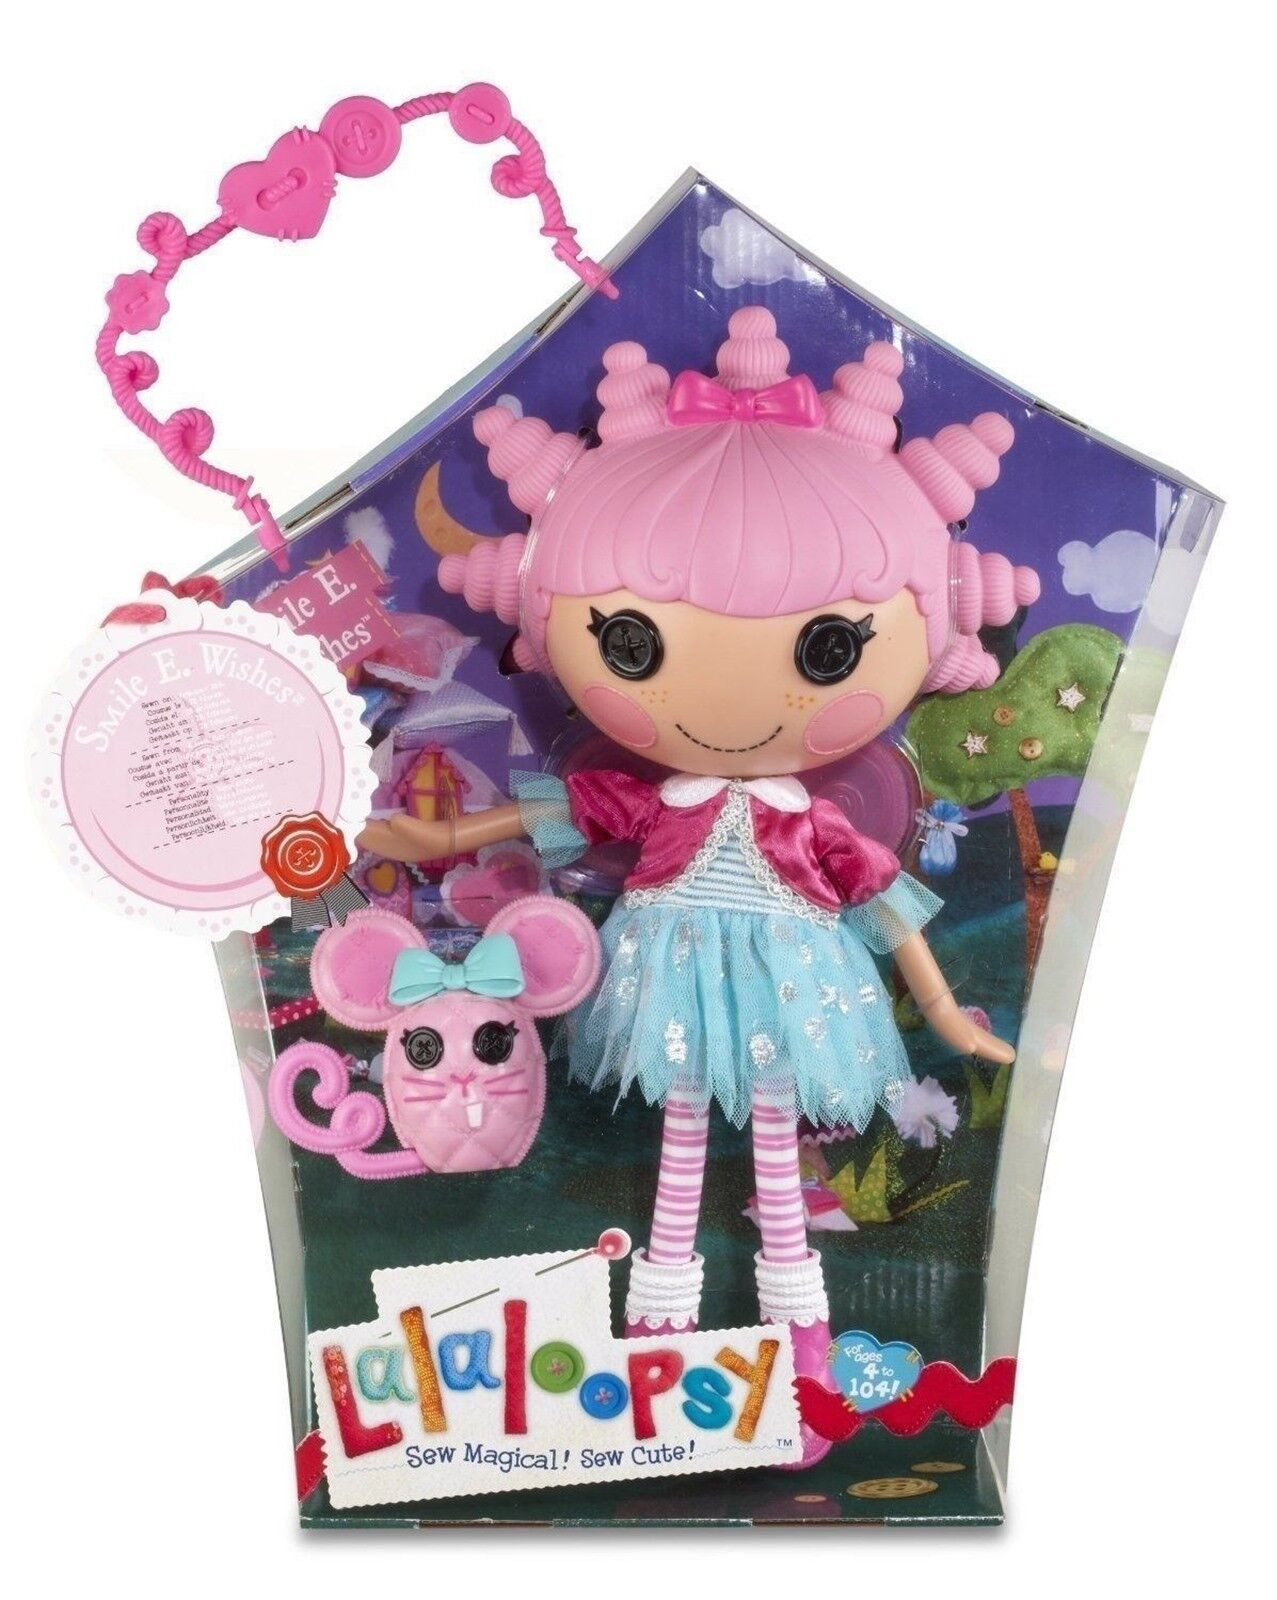 LALALOOPSY SMILE E. WISHES ( LARGE DOLL) MIB